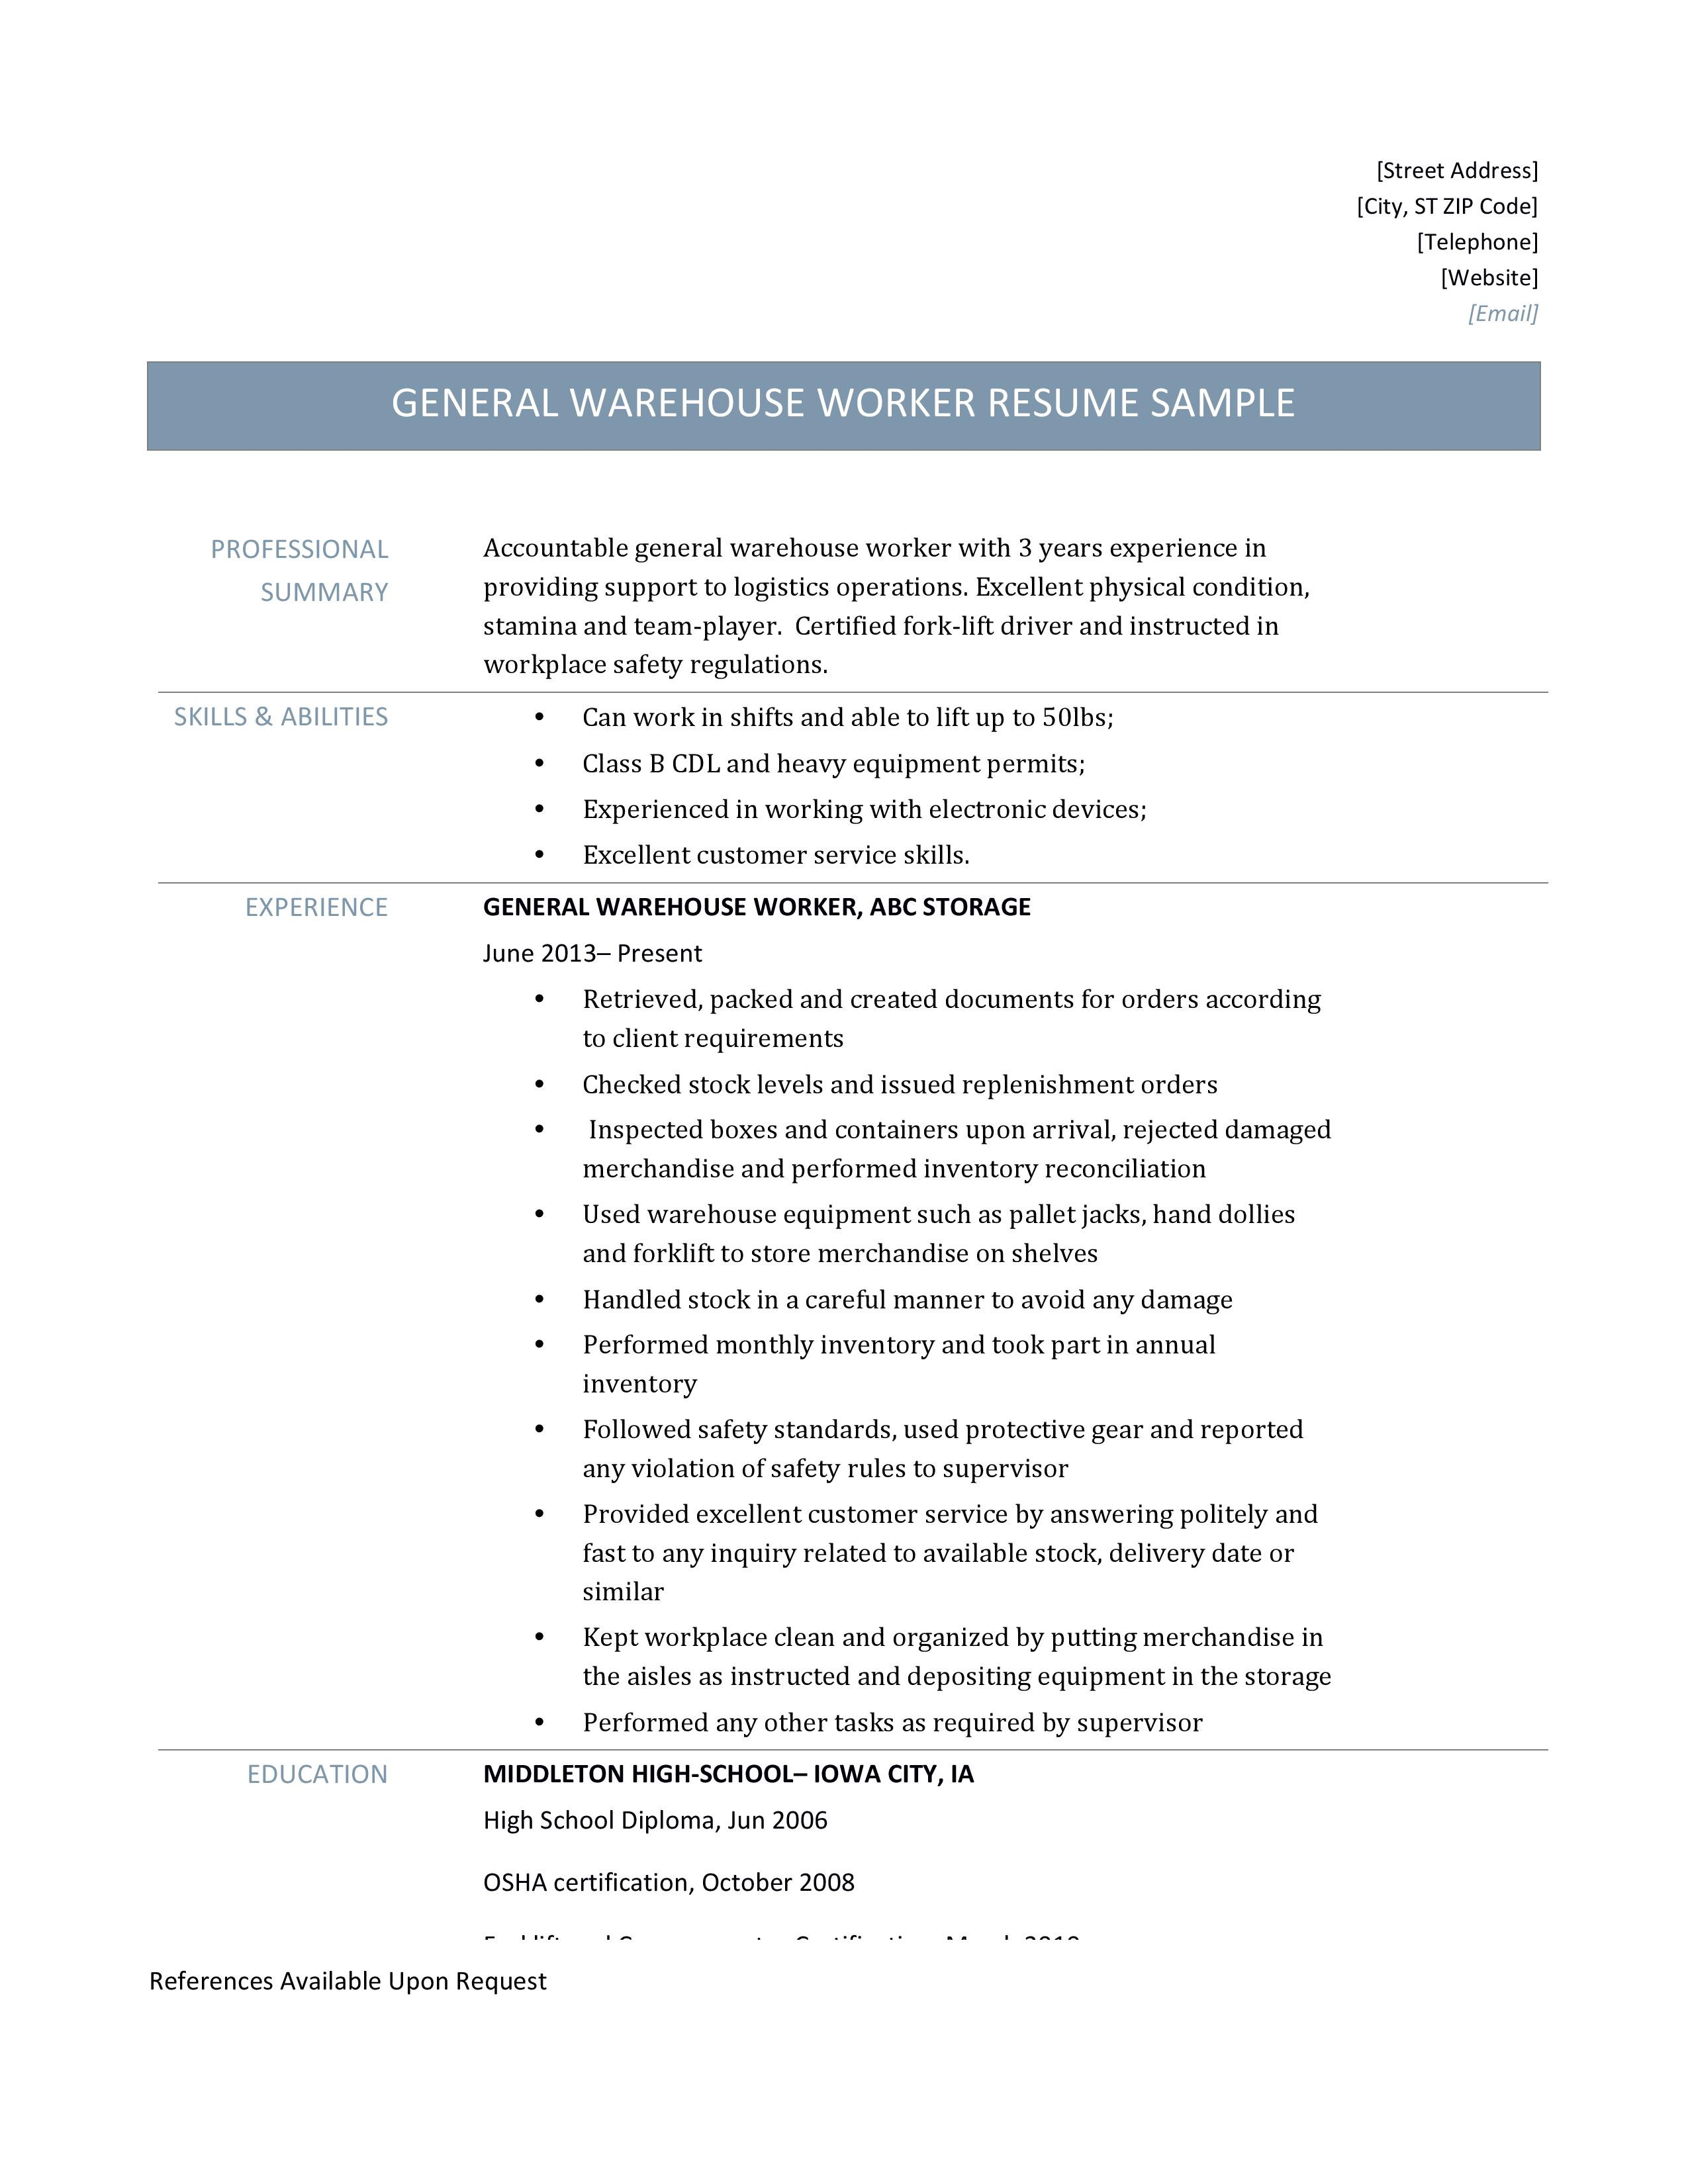 General Warehouse Worker Resume Samples And Job Description By